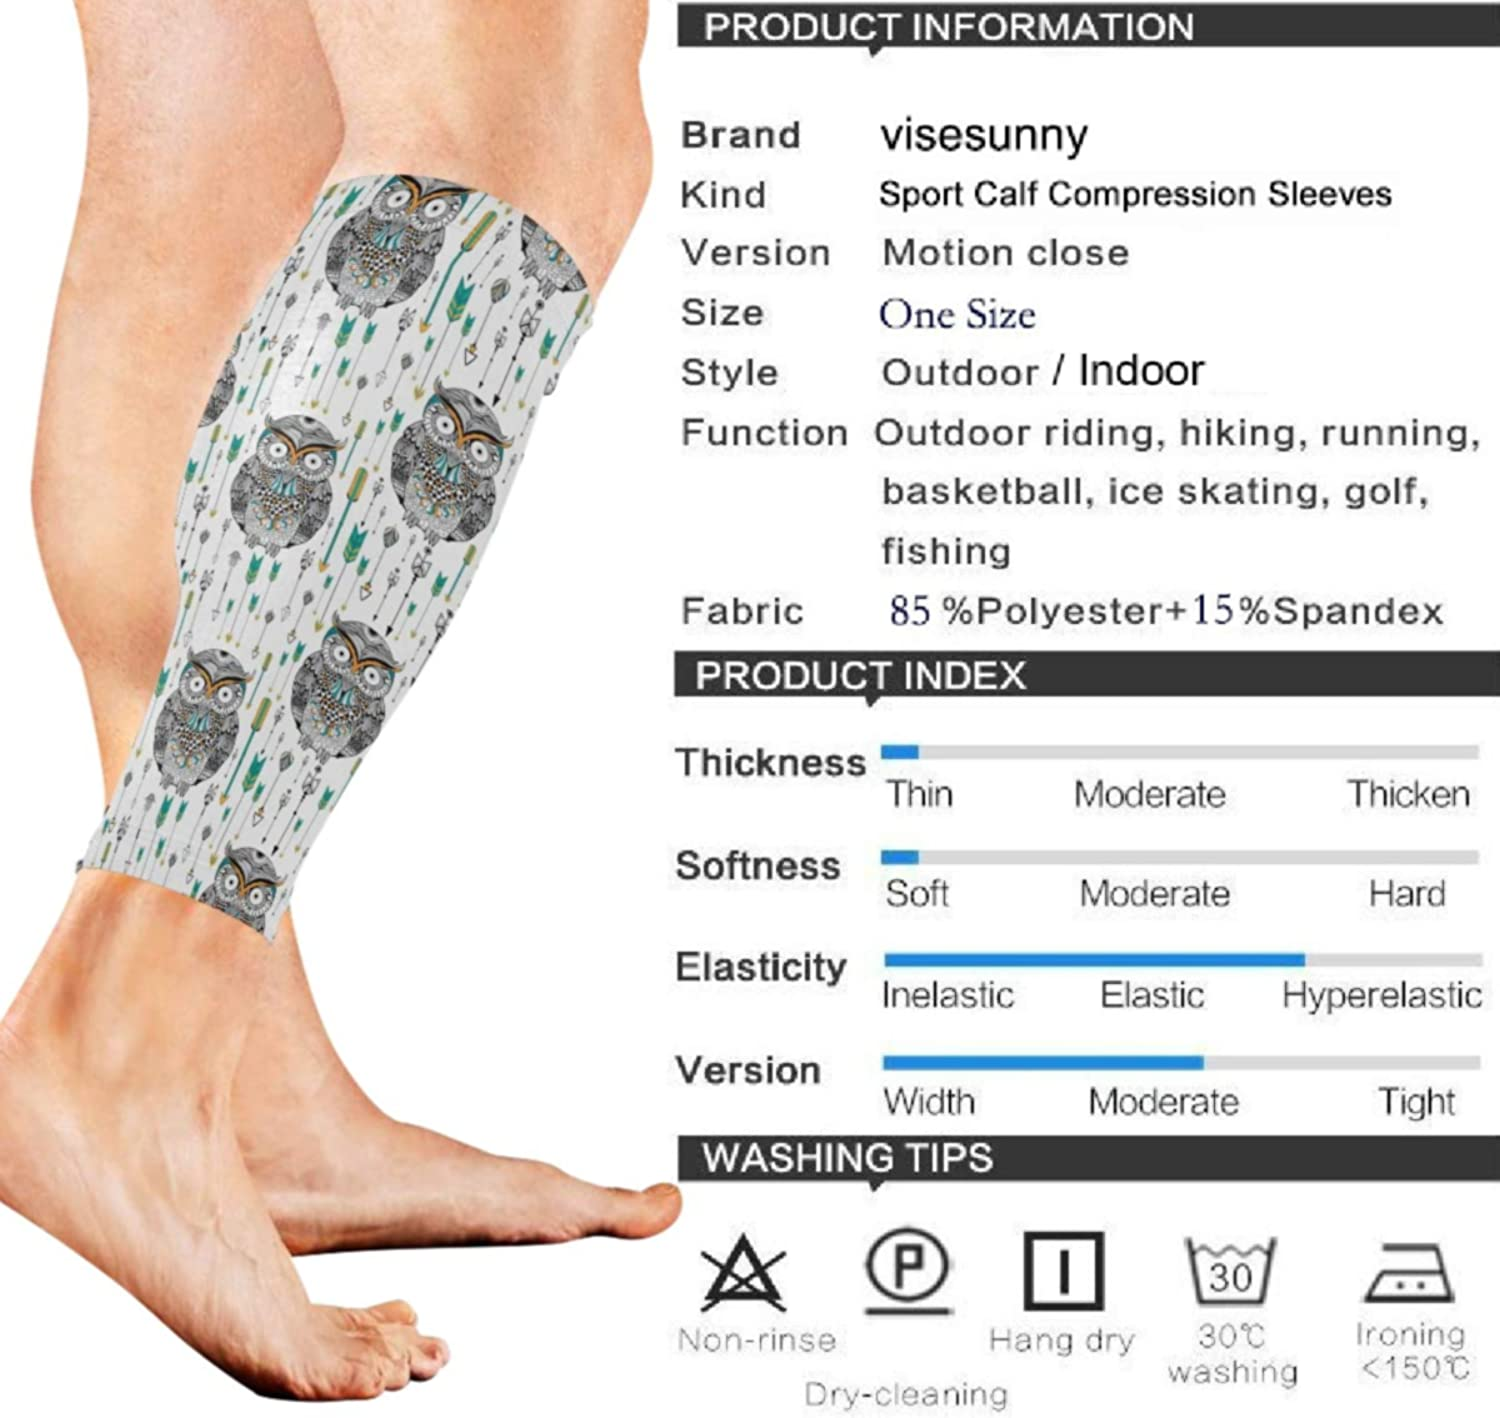 visesunny Boho Style Owl Sports Calf Support Sleeves for Muscle Pain Relief, Improved Circulation Compression – Effective Support for Running, Jogging, Workout (1 Pair)